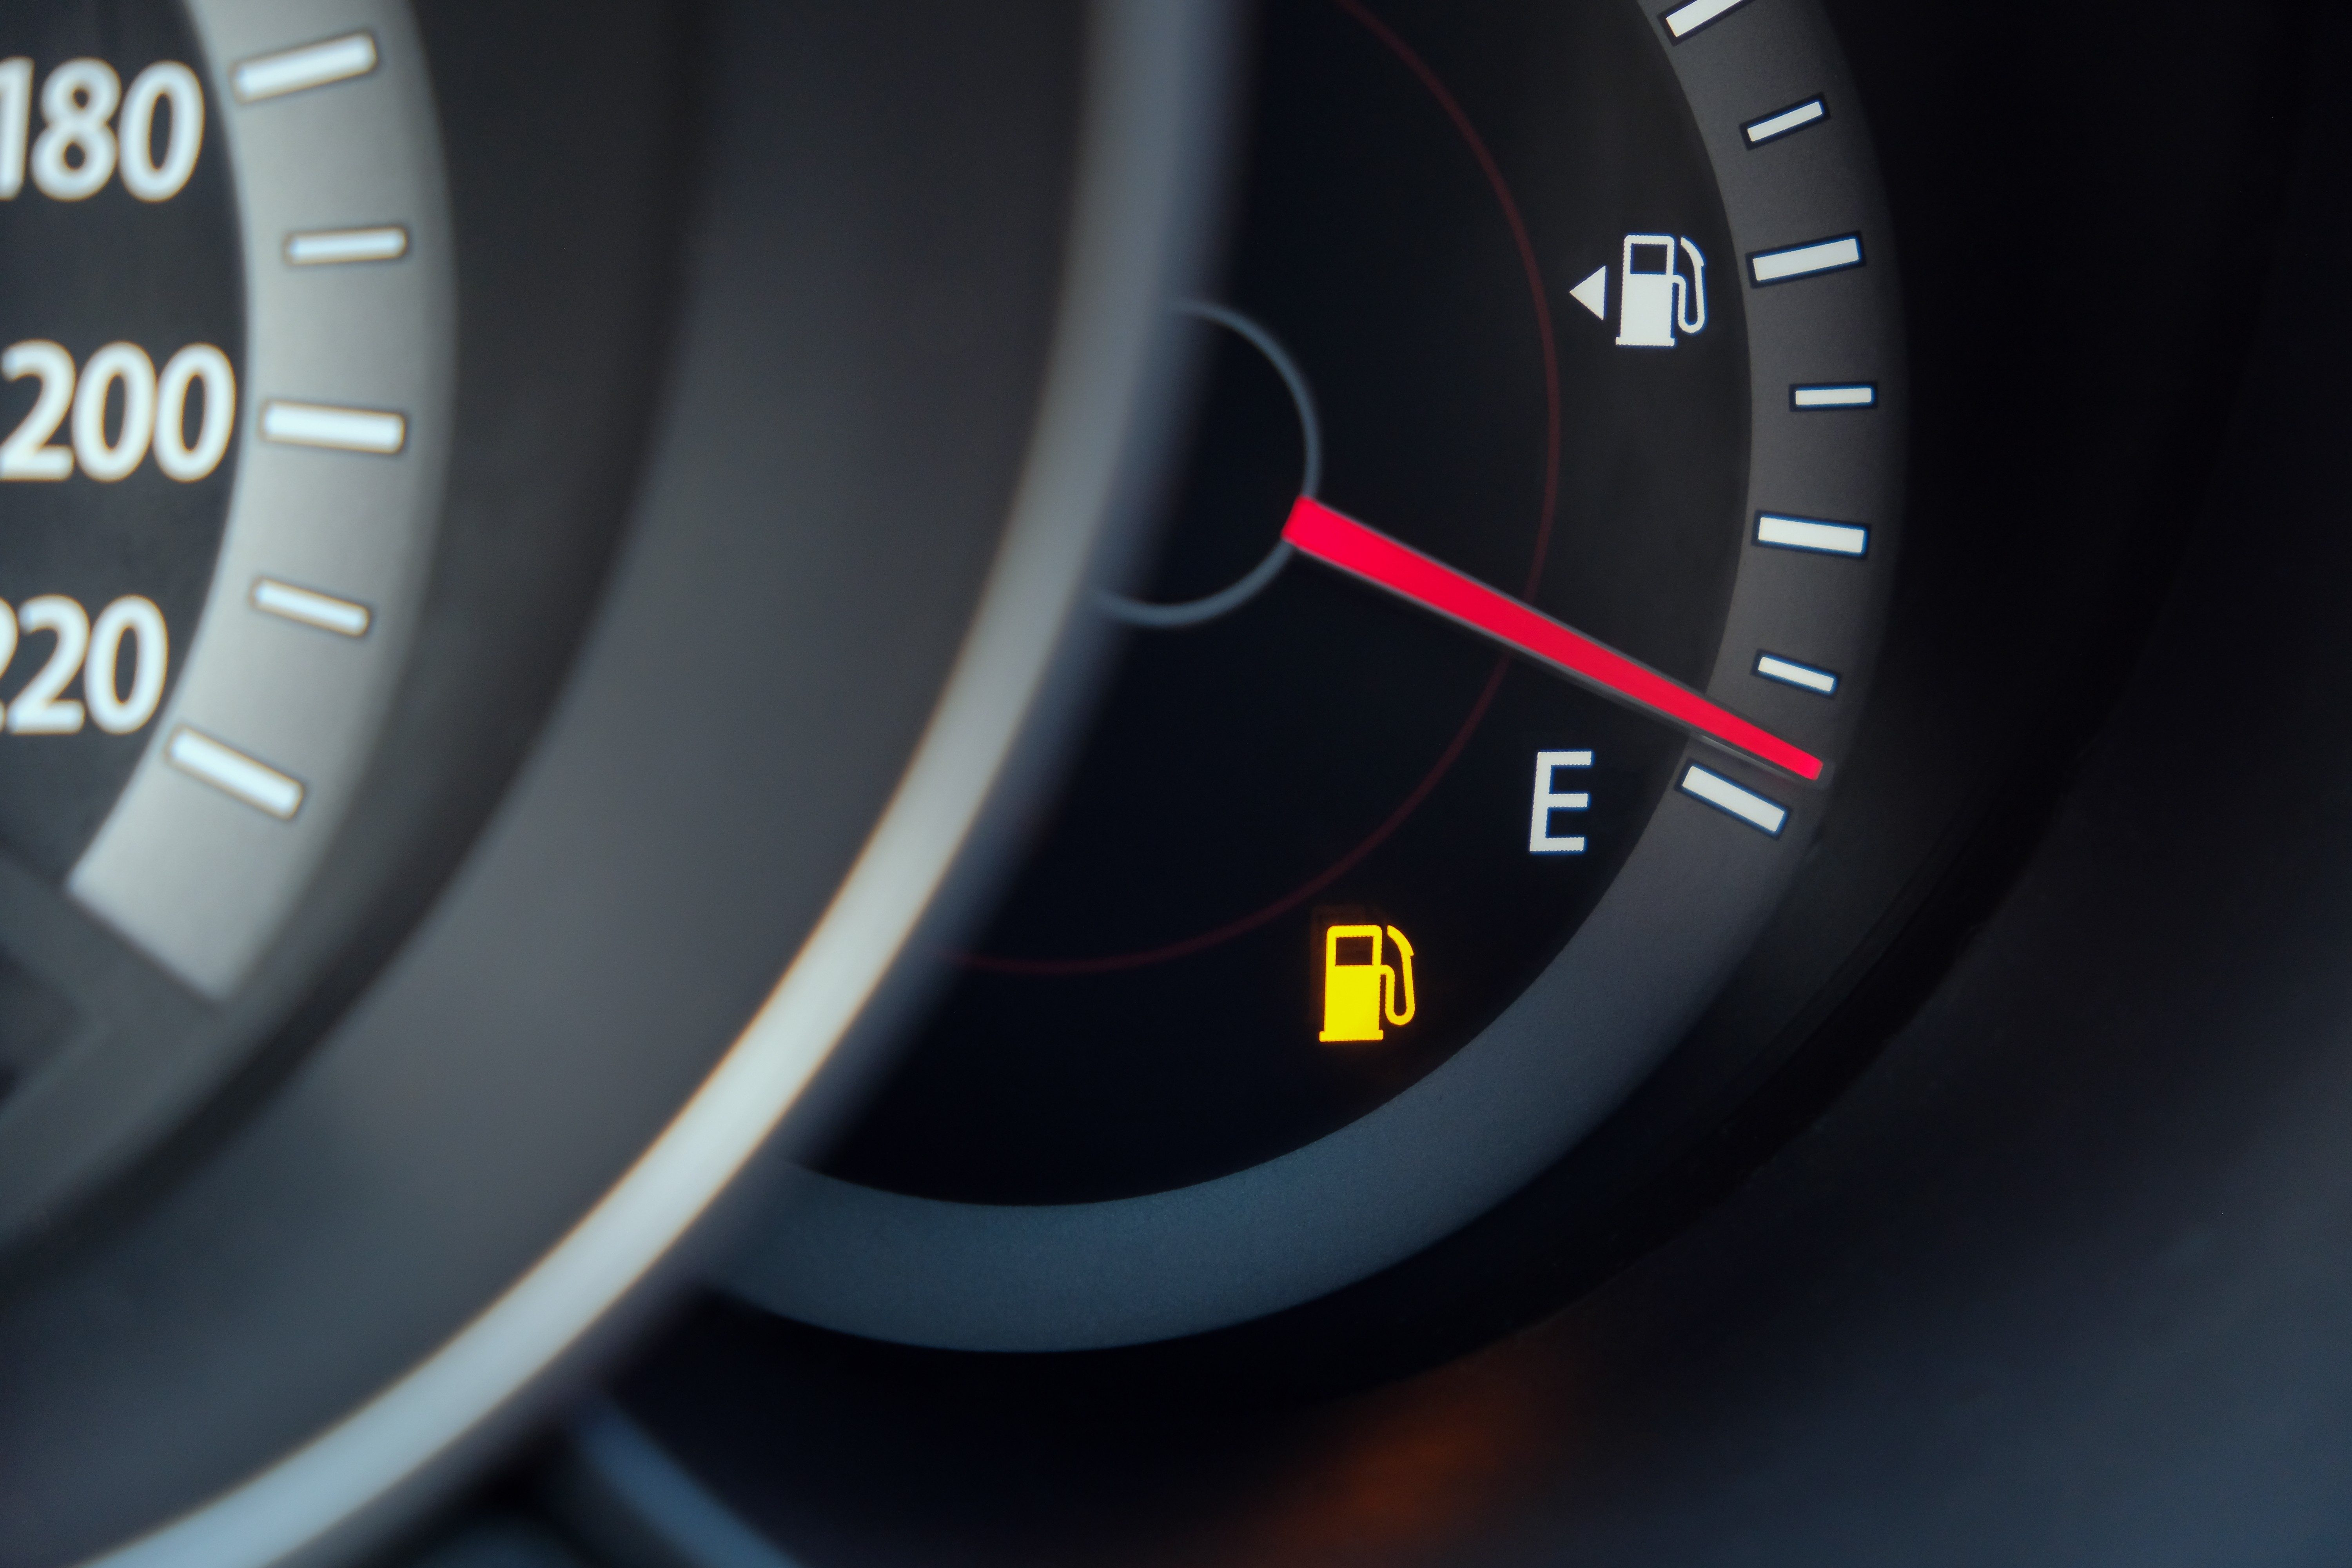 Fuel gauge with warning indicating low fuel tank